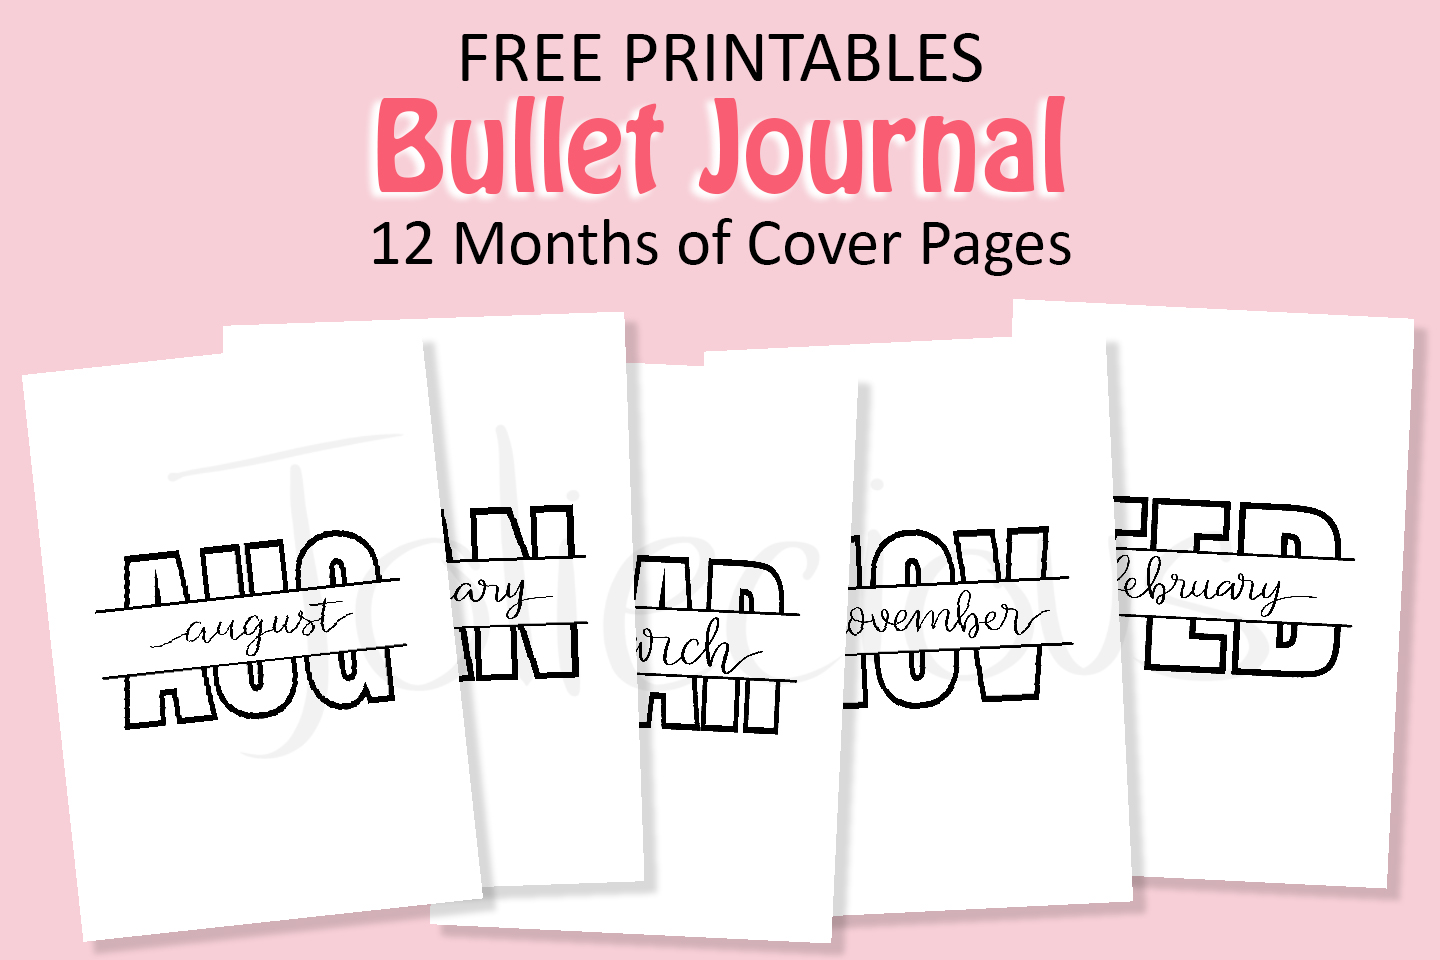 Free Bullet Journal Printables: 12 Months of Cover Pages